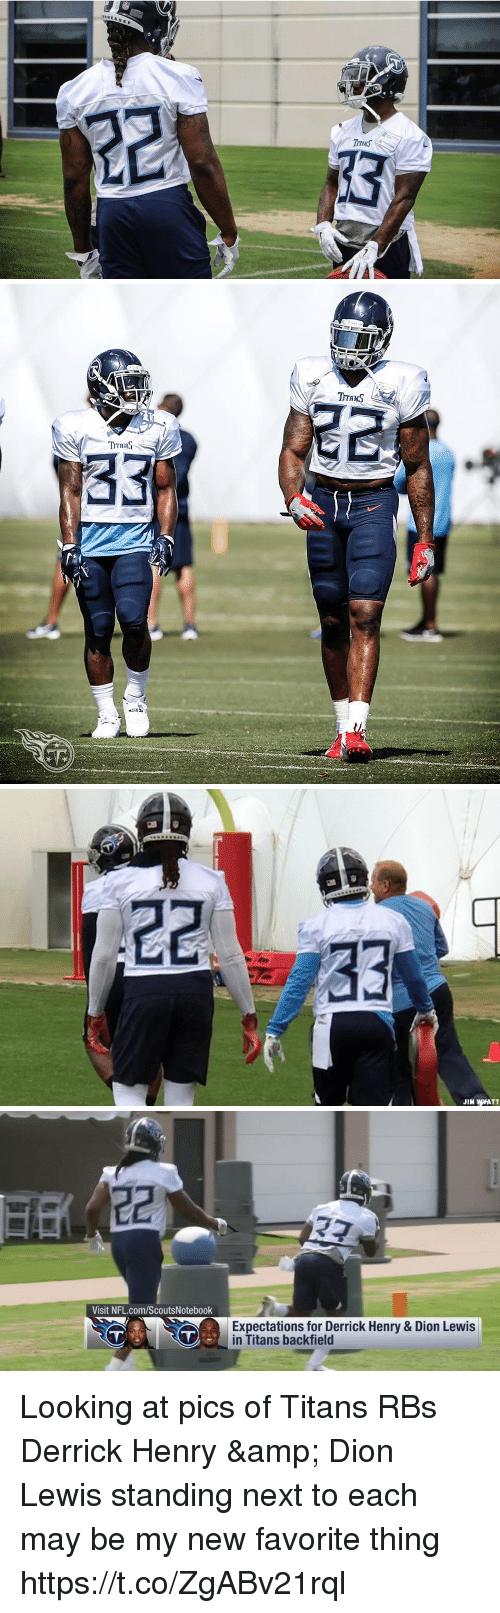 Derrick Henry: NNES   TTaMS   JIM WWATT   Visit NFL.com/ScoutsNotebook  Expectations for Derrick Henry & Dion Lewis  in Titans backfield Looking at pics of Titans RBs Derrick Henry & Dion Lewis standing next to each may be my new favorite thing https://t.co/ZgABv21rql